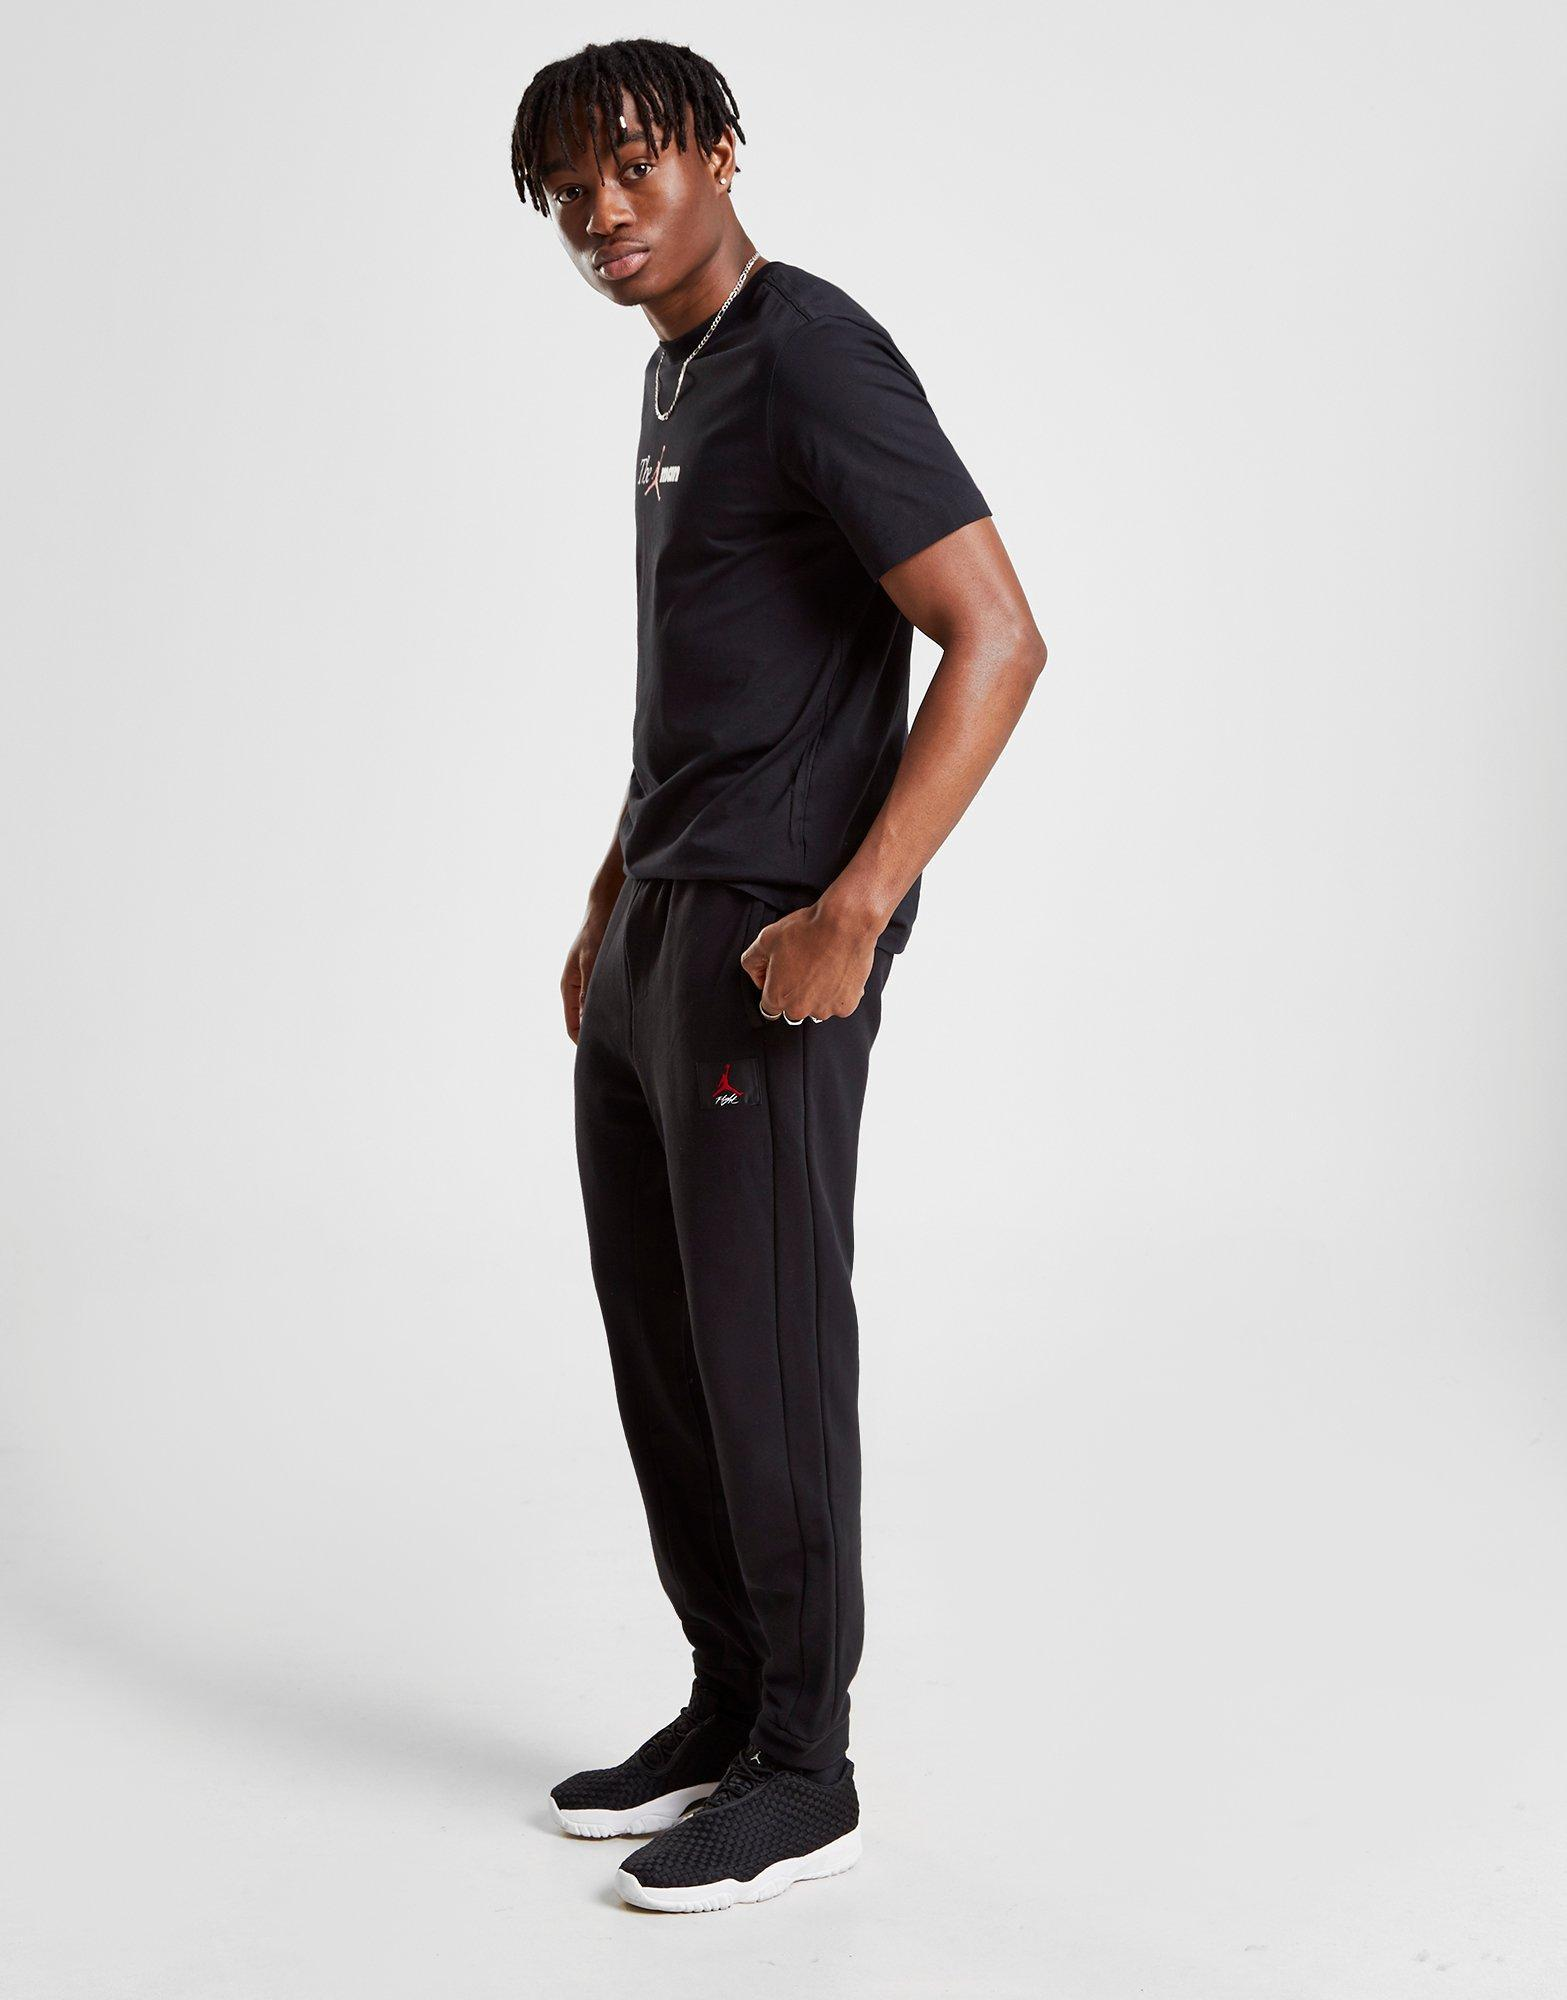 bd7196b081bf2a Lyst - Nike Jordan Flight Men s Trousers in Black for Men